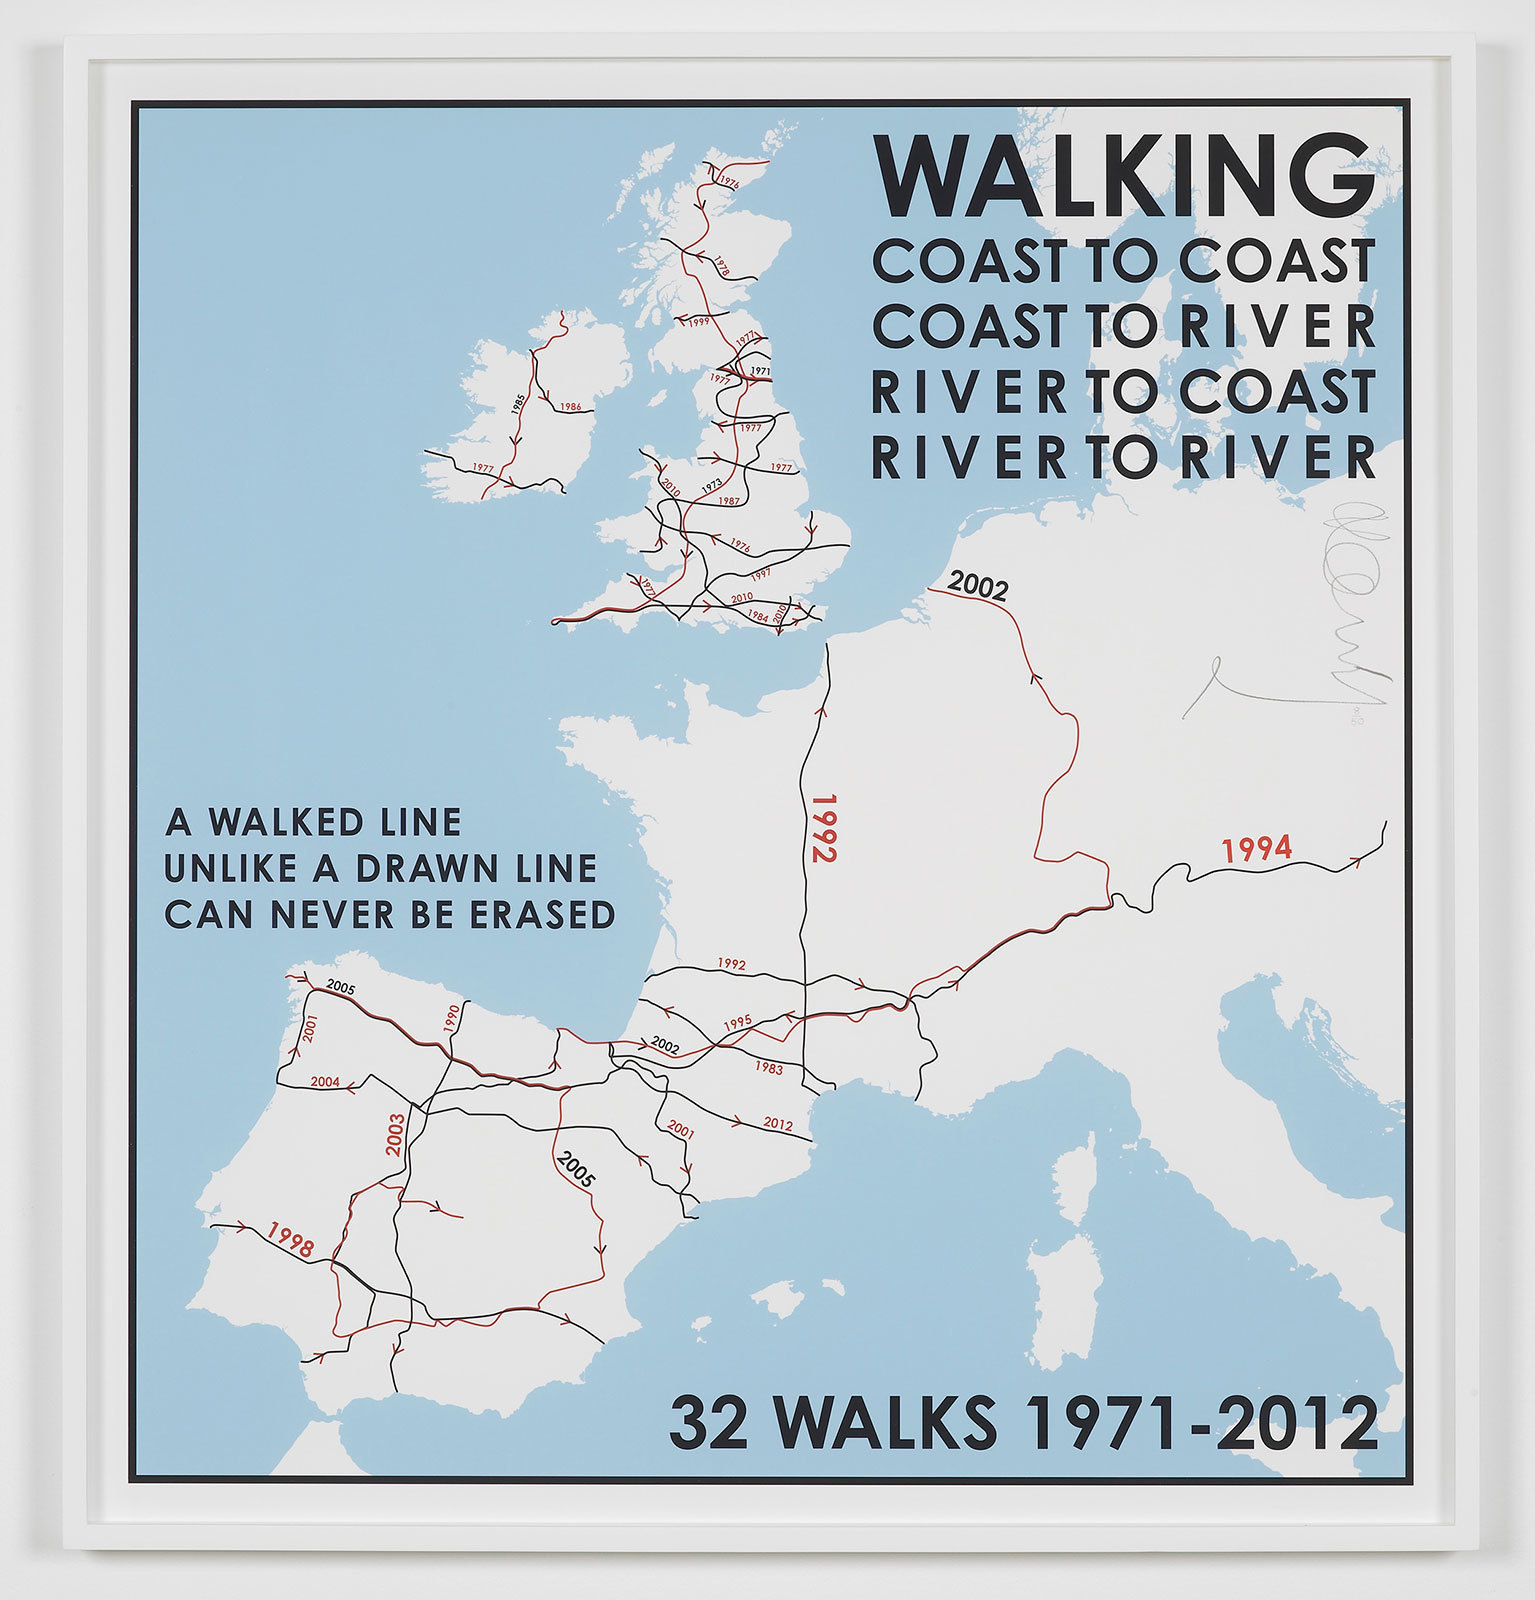 Hamish Fulton (born 1946 in London, lives and works in Canterbury), 32 walks map. Western Europe. 1971-2012, Giclée print, 74 x 69 cmFulton have walked in western Europe over a 40-year period. From Franco's Spain in the 70s to Northern Ireland the natural boundaries of valleys, coastlines and rivers are followed, rather than legal frontiers.